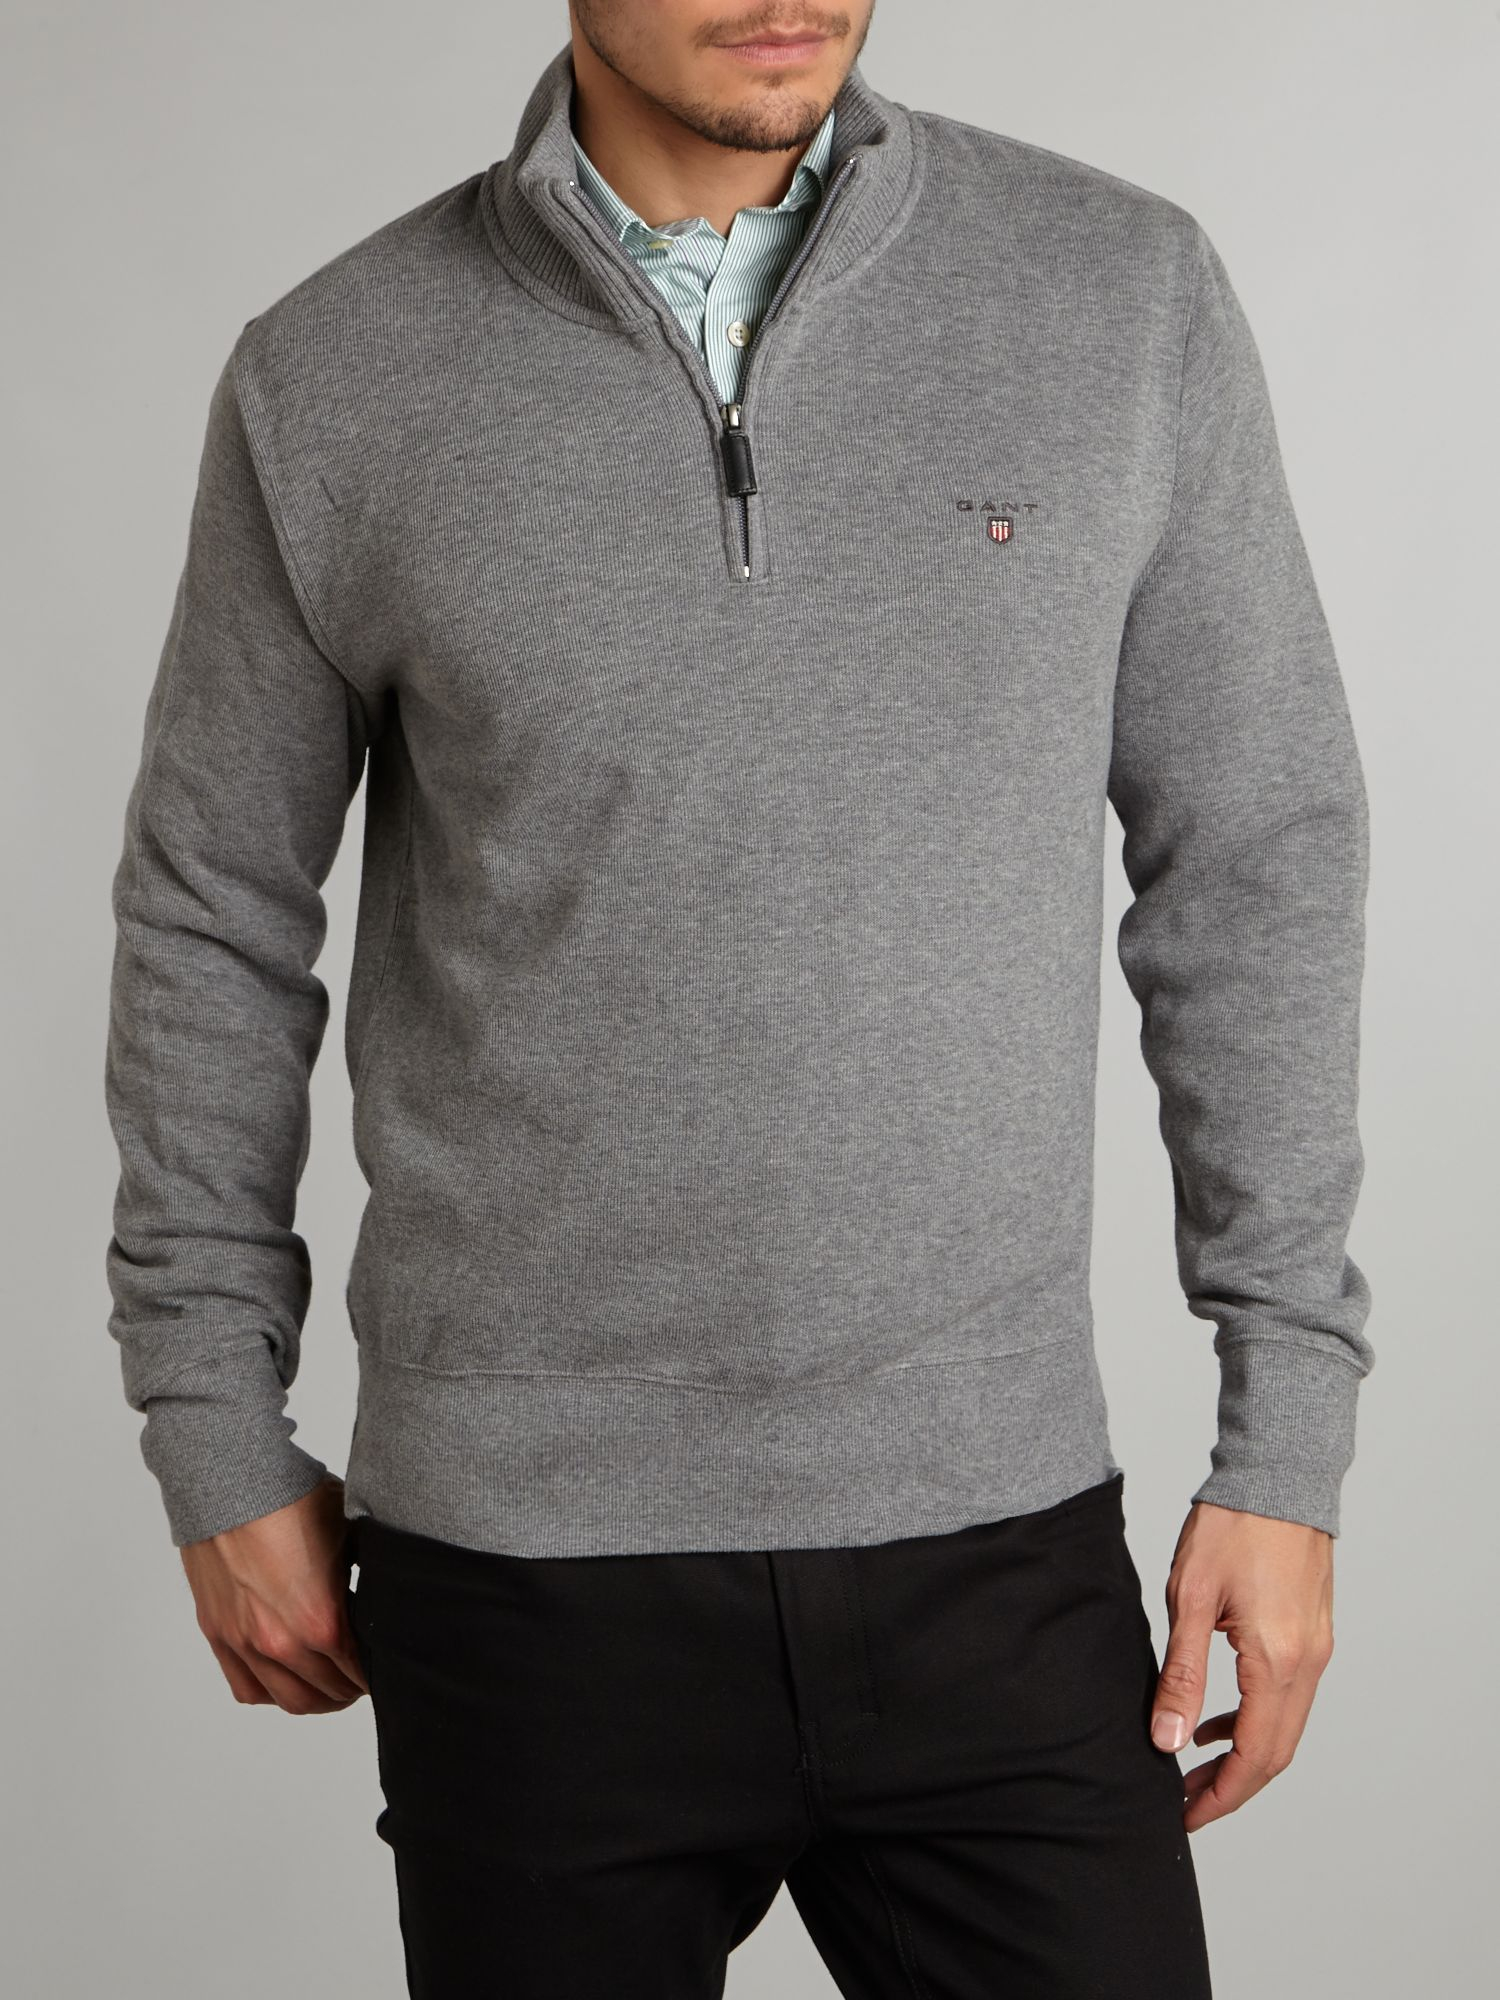 Mens Half Zip Sweatshirts | Fashion Ql